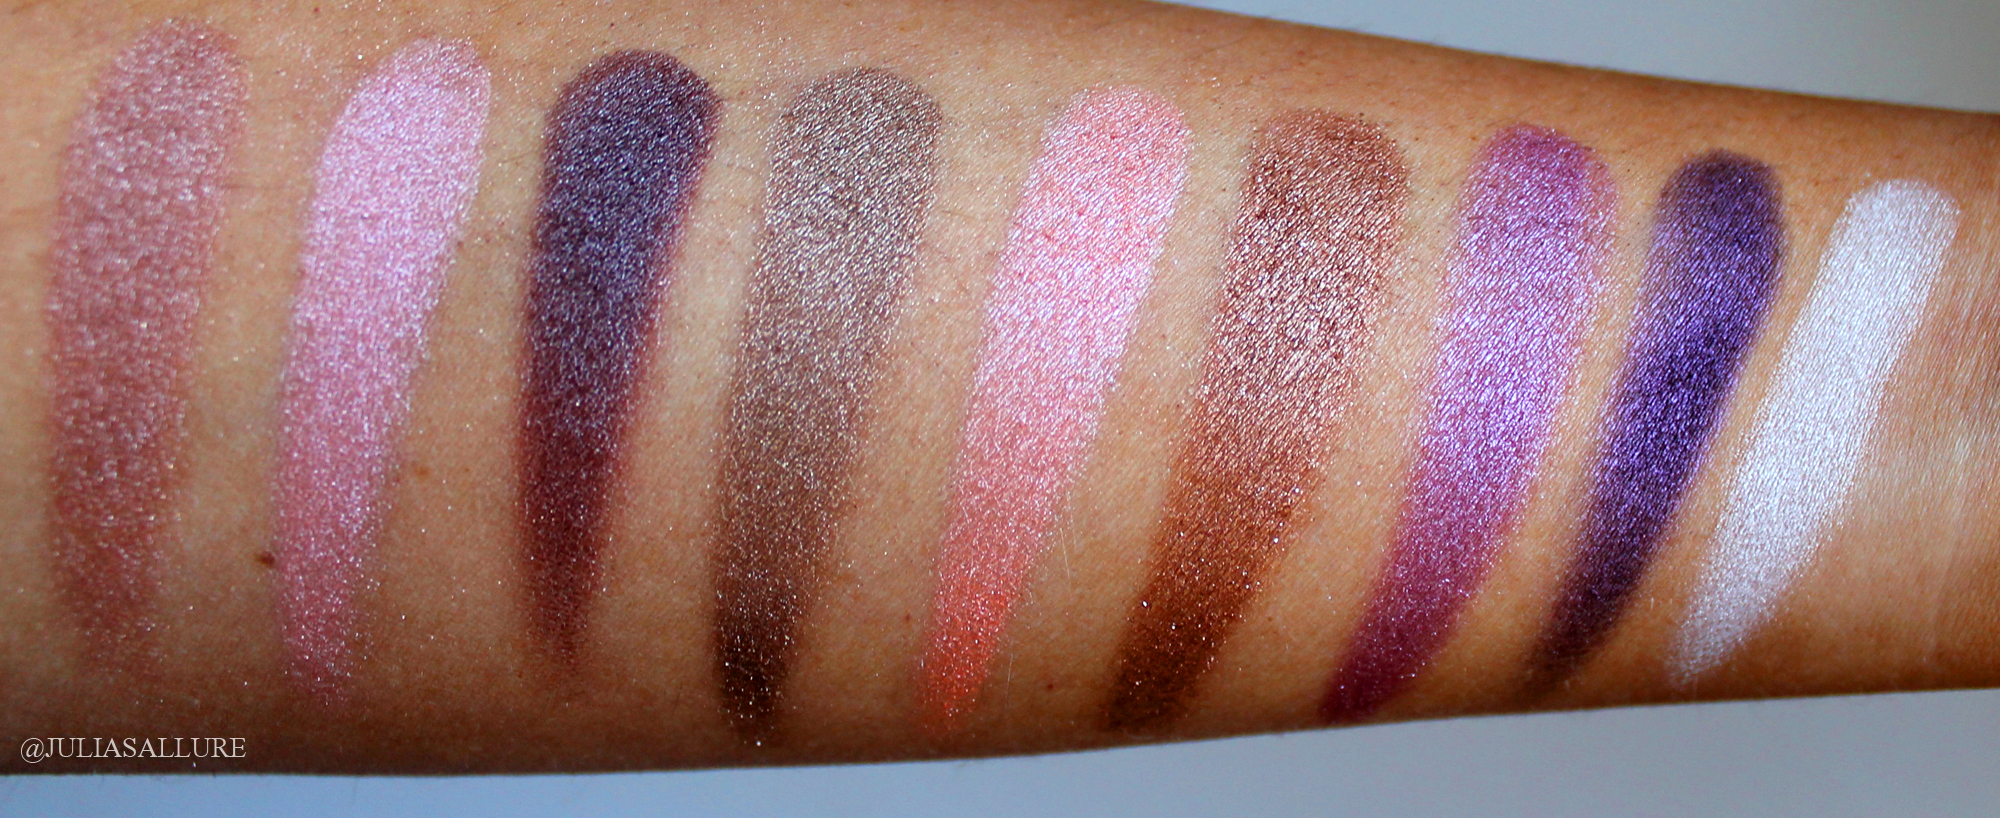 Supernova 18-Color Baked Eyeshadow Palette by BH Cosmetics #4